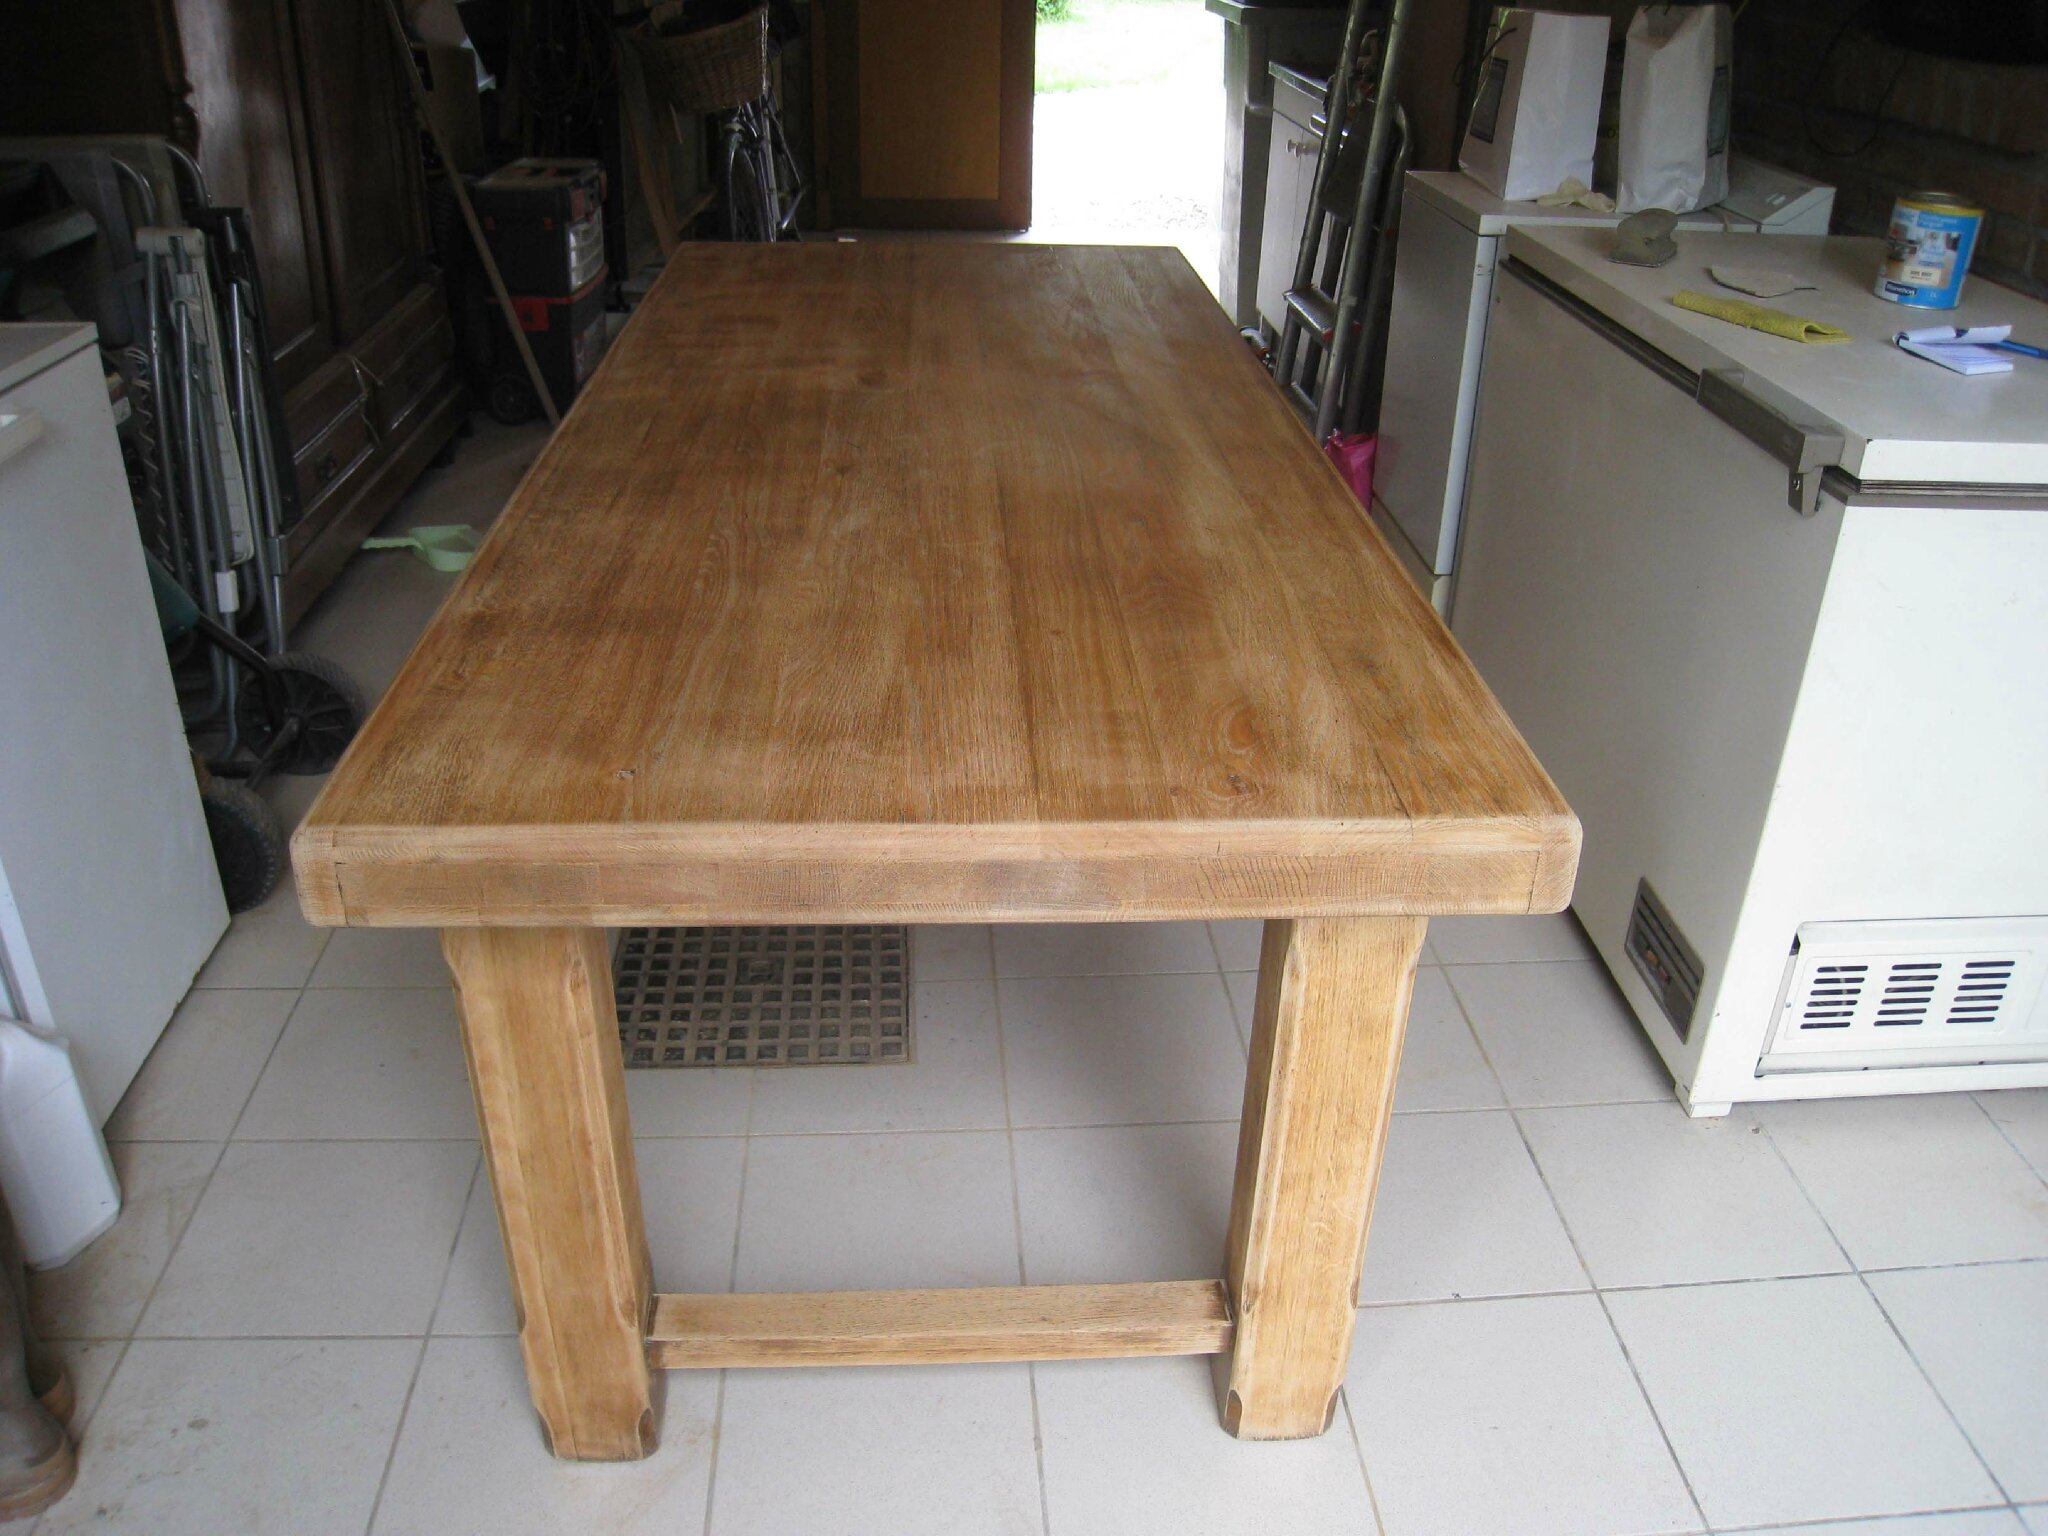 Repeindre une table basse en bois for Customiser une table en bois